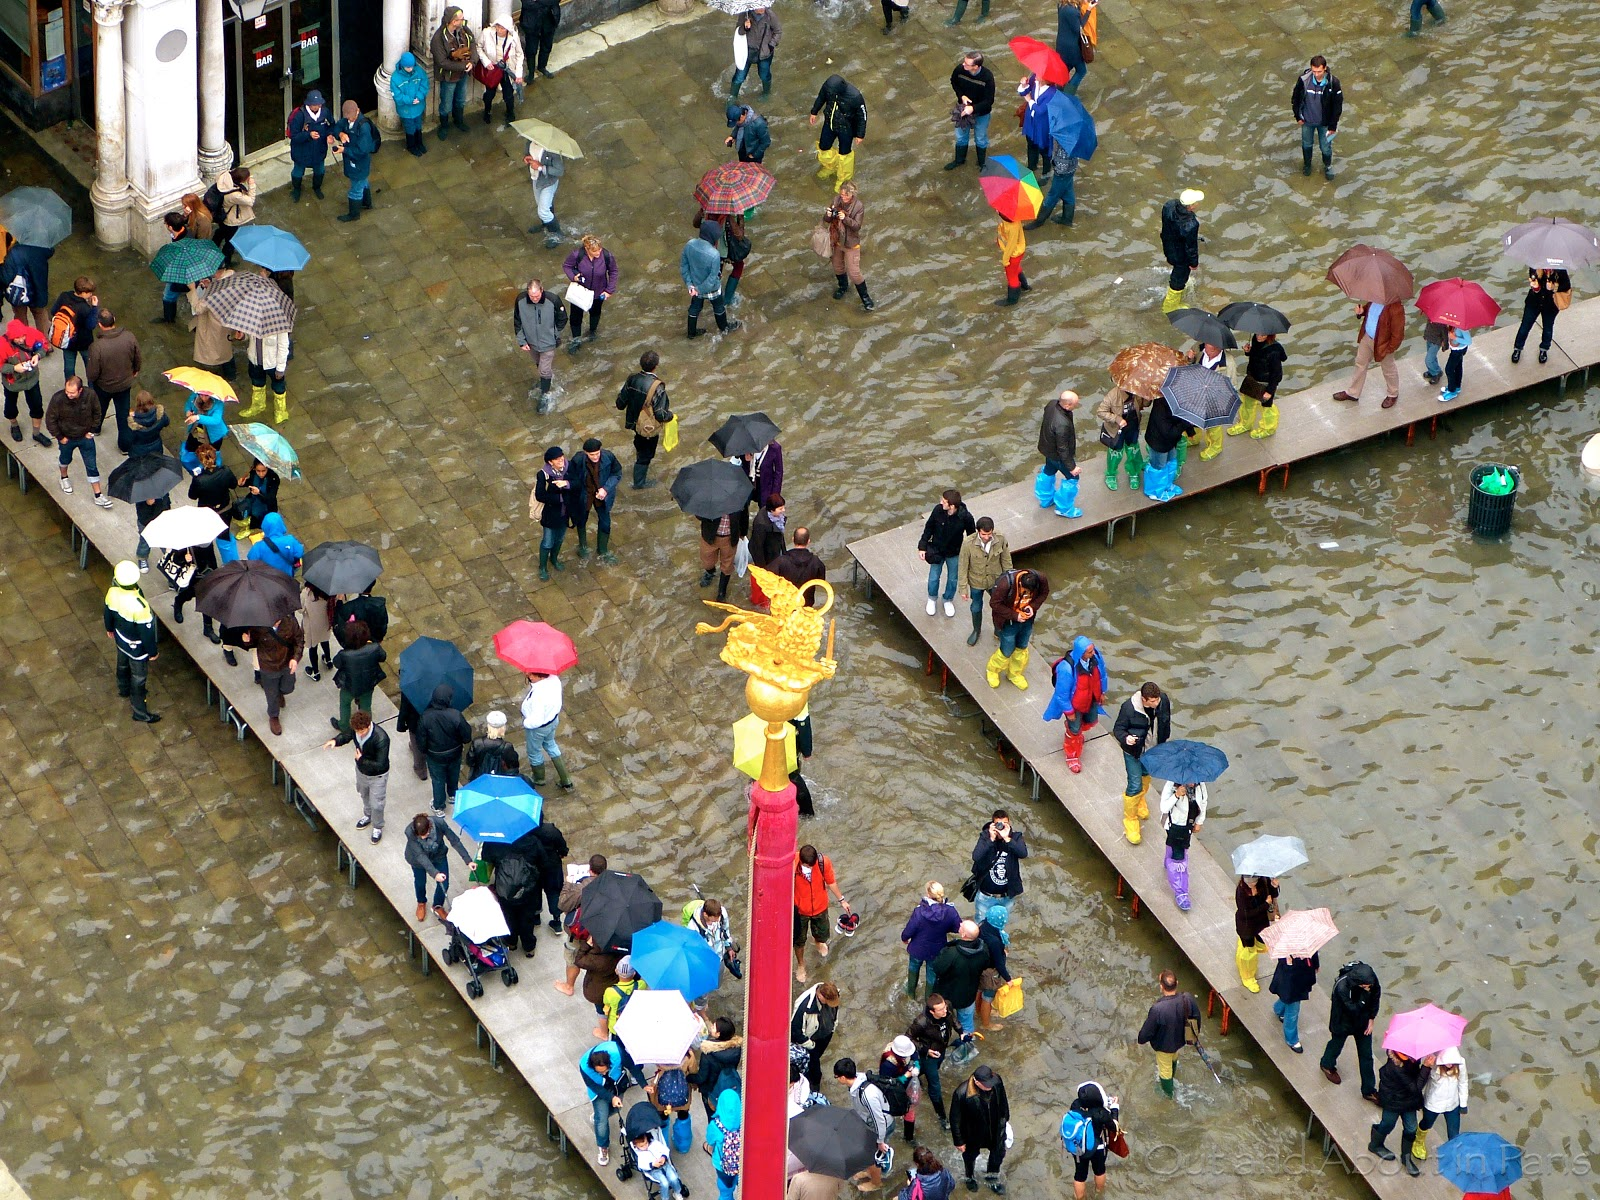 More than 70% of Venice Flooded, VIDEO+PHOTOS | This is Italy |Venice Flooding October 2012